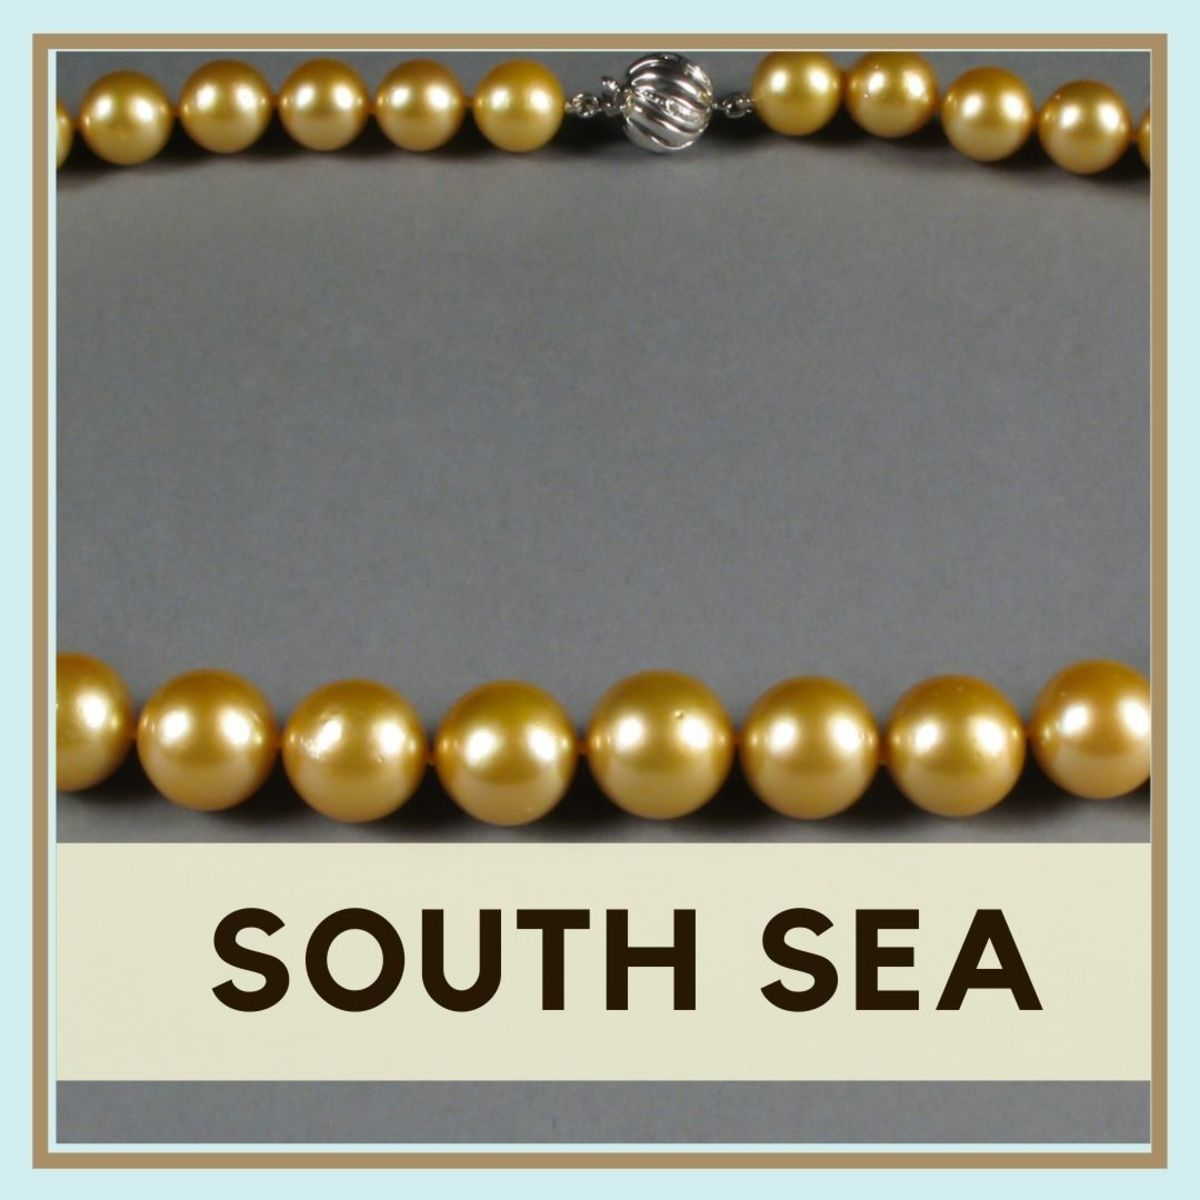 South Sea pearls are known for their color and high quality.